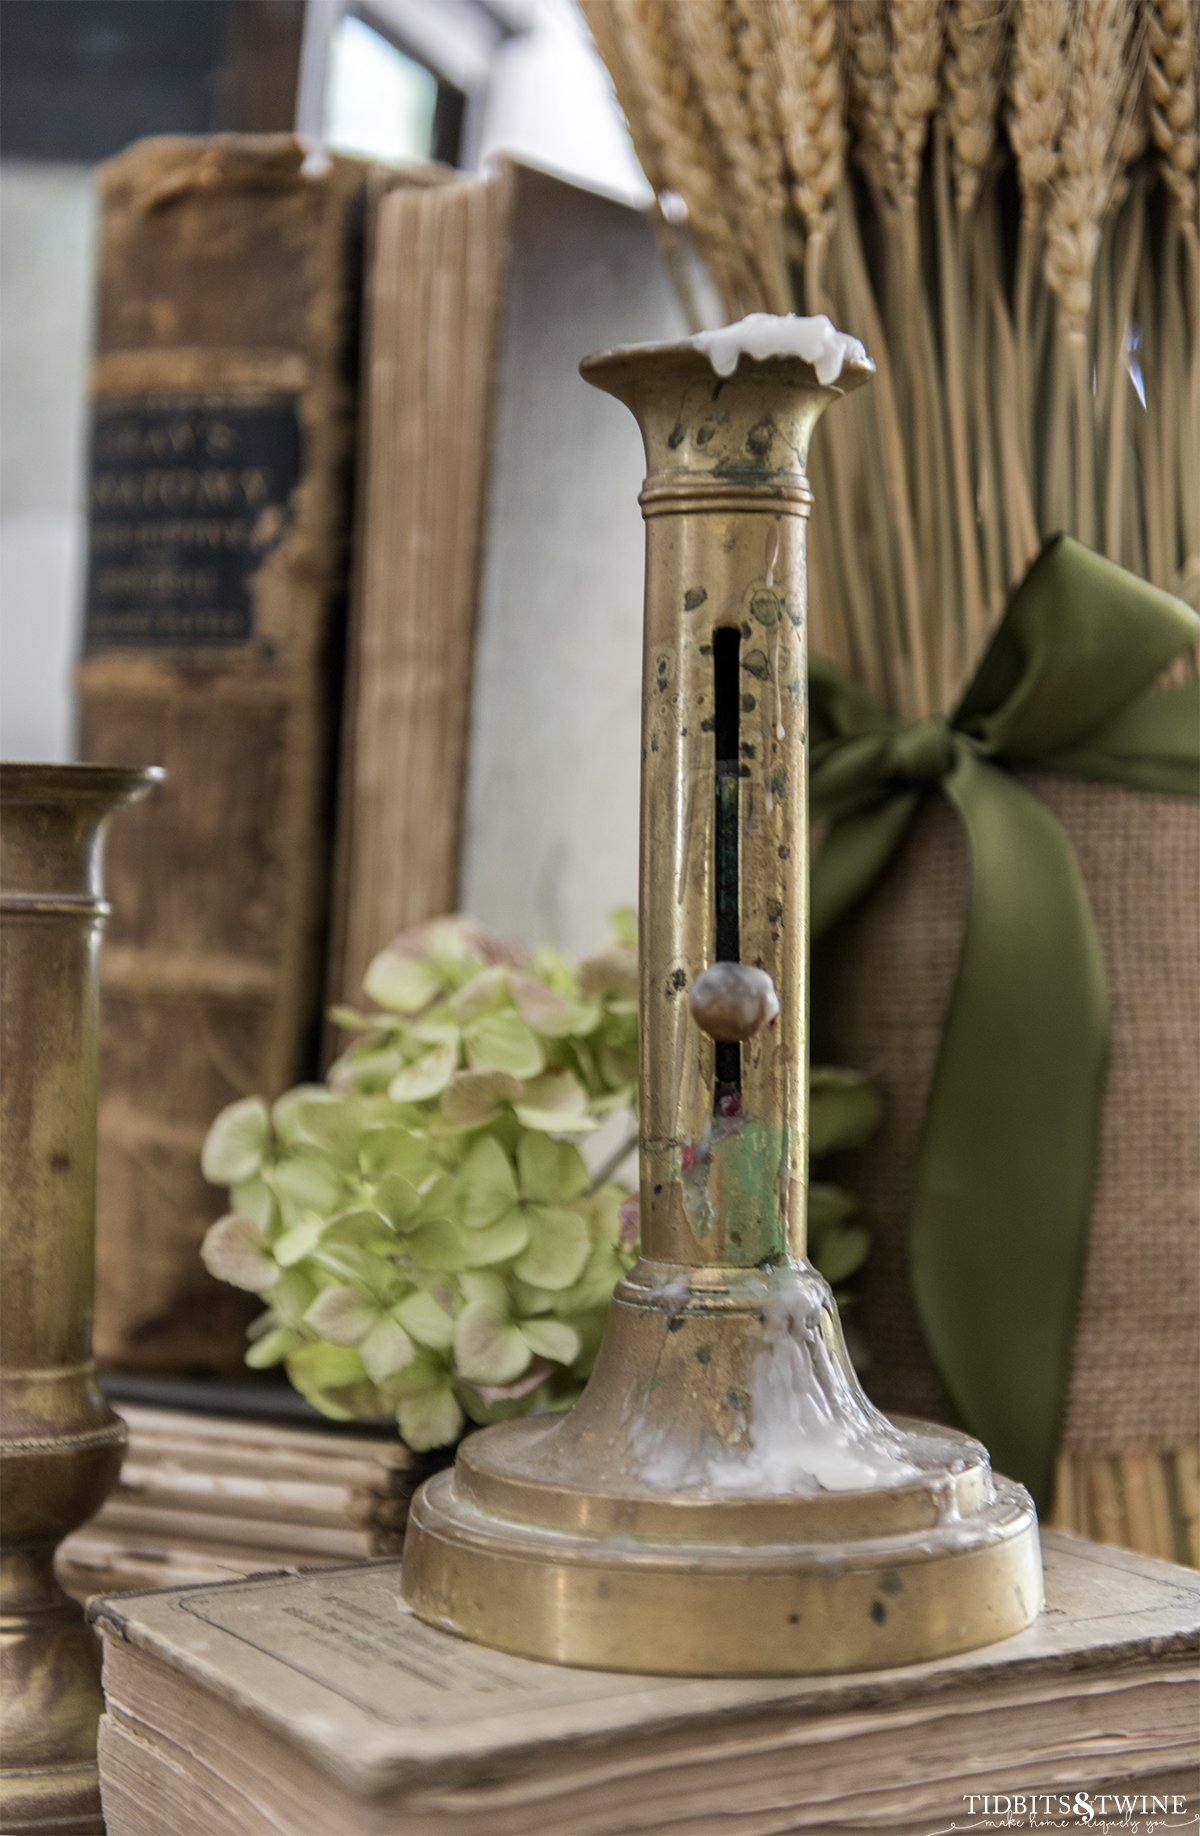 antique french brass candlestick sitting on old books with dried hydrangea and wheat bouquet in background